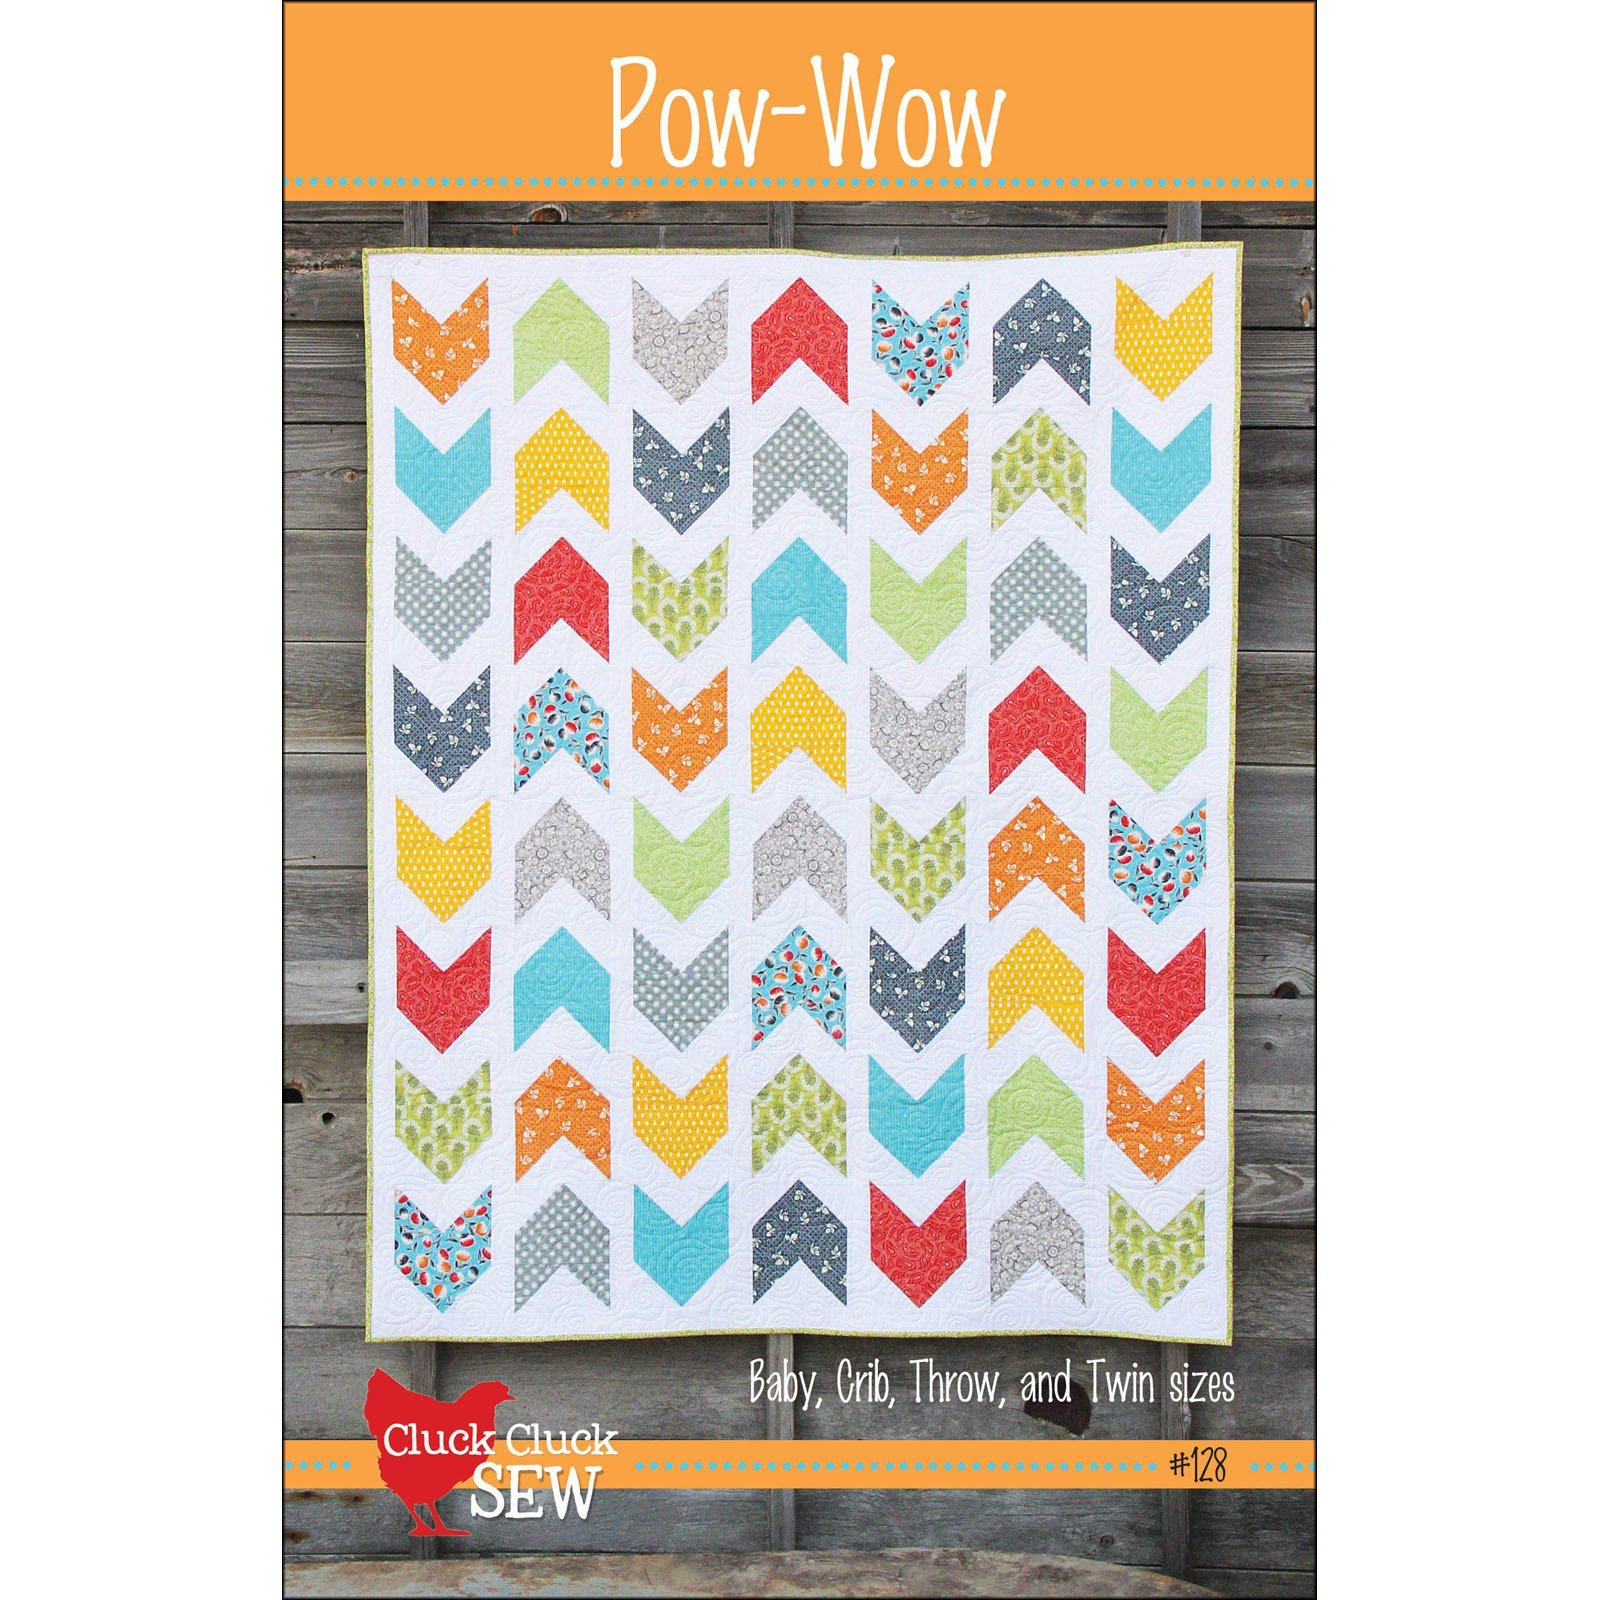 Pow Wow<br/>Cluck Cluck Sew